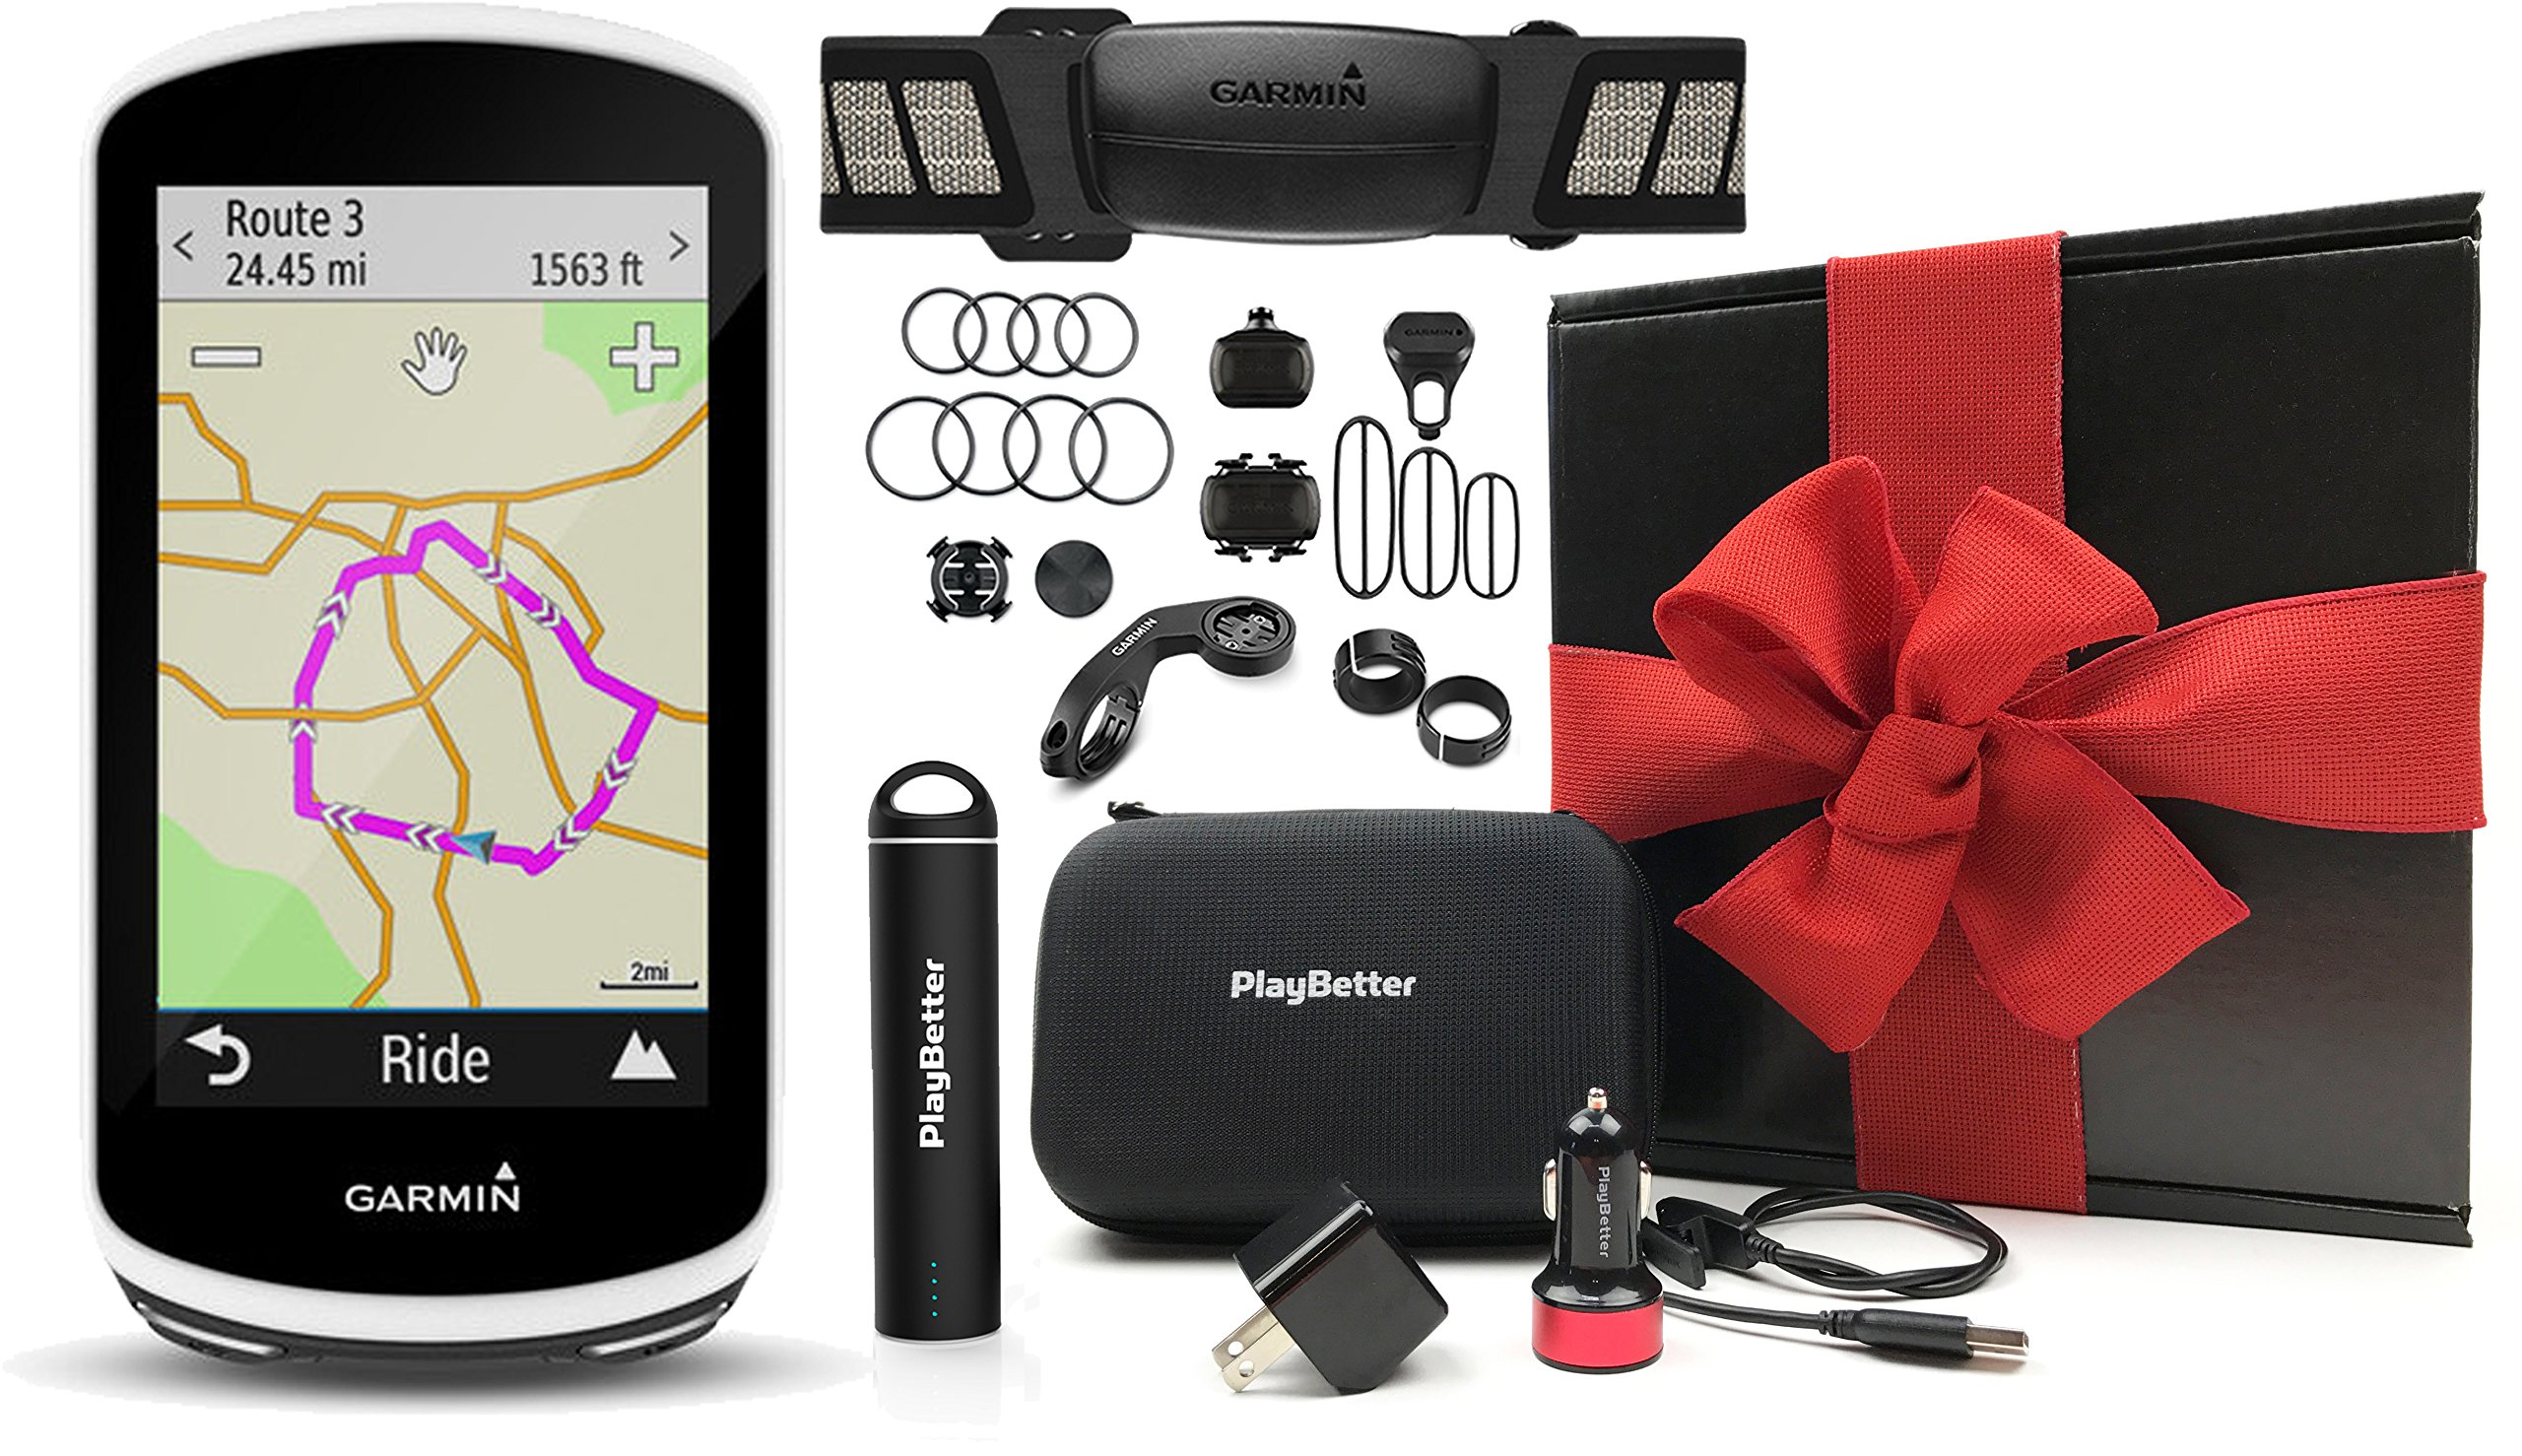 Garmin Edge 1030 Cycle Gift Box Bundle | with Garmin Chest Strap HRM, Speed & Cadence Sensors, PlayBetter Portable USB Charger, Car/Wall Adapters, Hard Case, Bike Mounts | GPS Bike Computer | Gift Box by PlayBetter